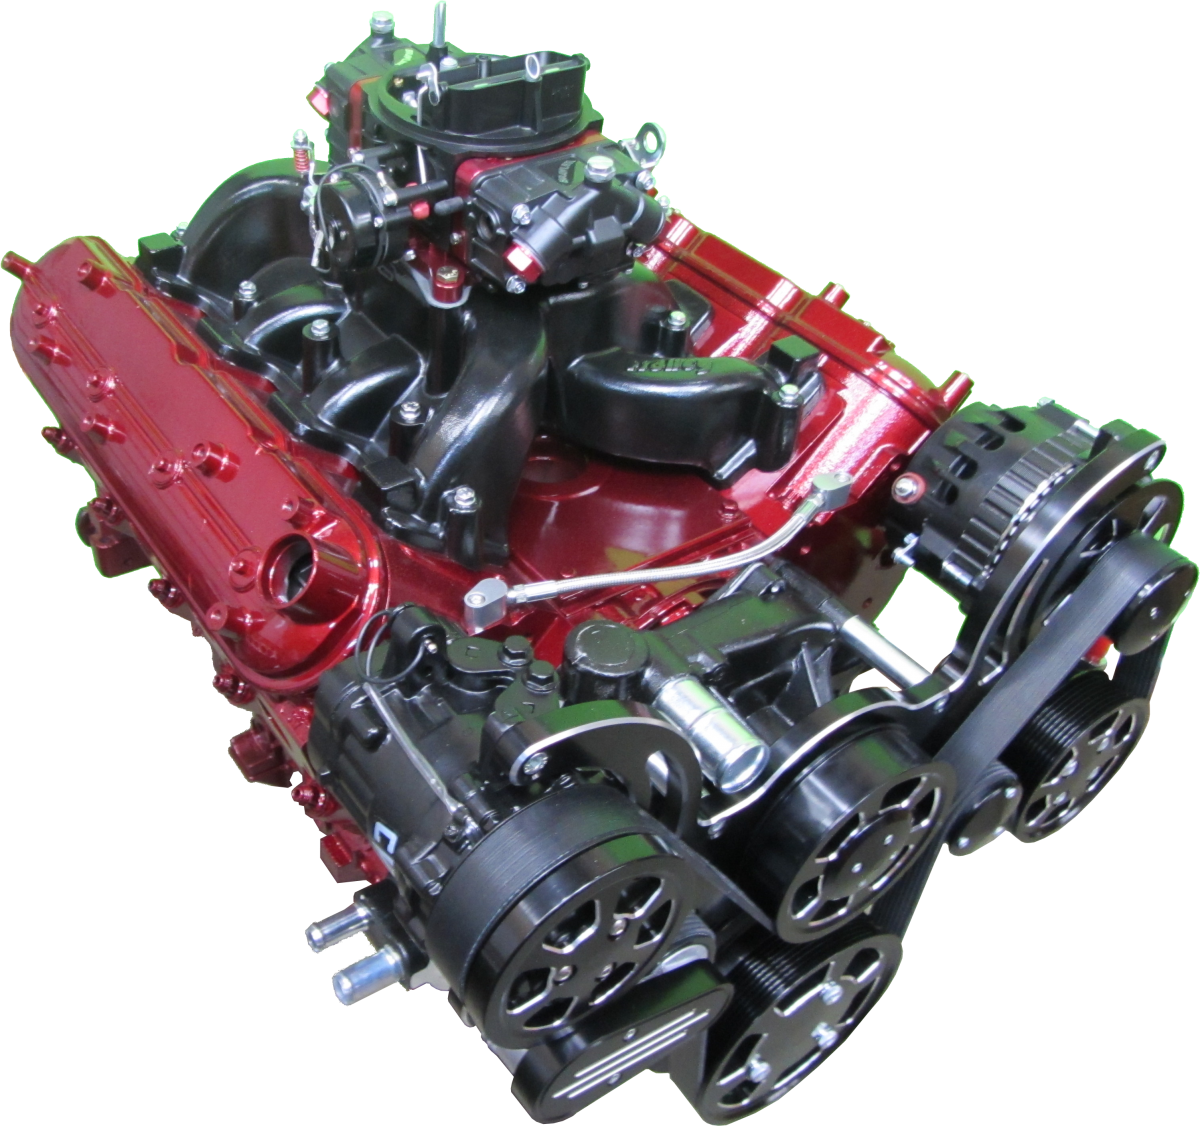 Red Chevy LS motor with black AC pulley kit and Brawler carburetor